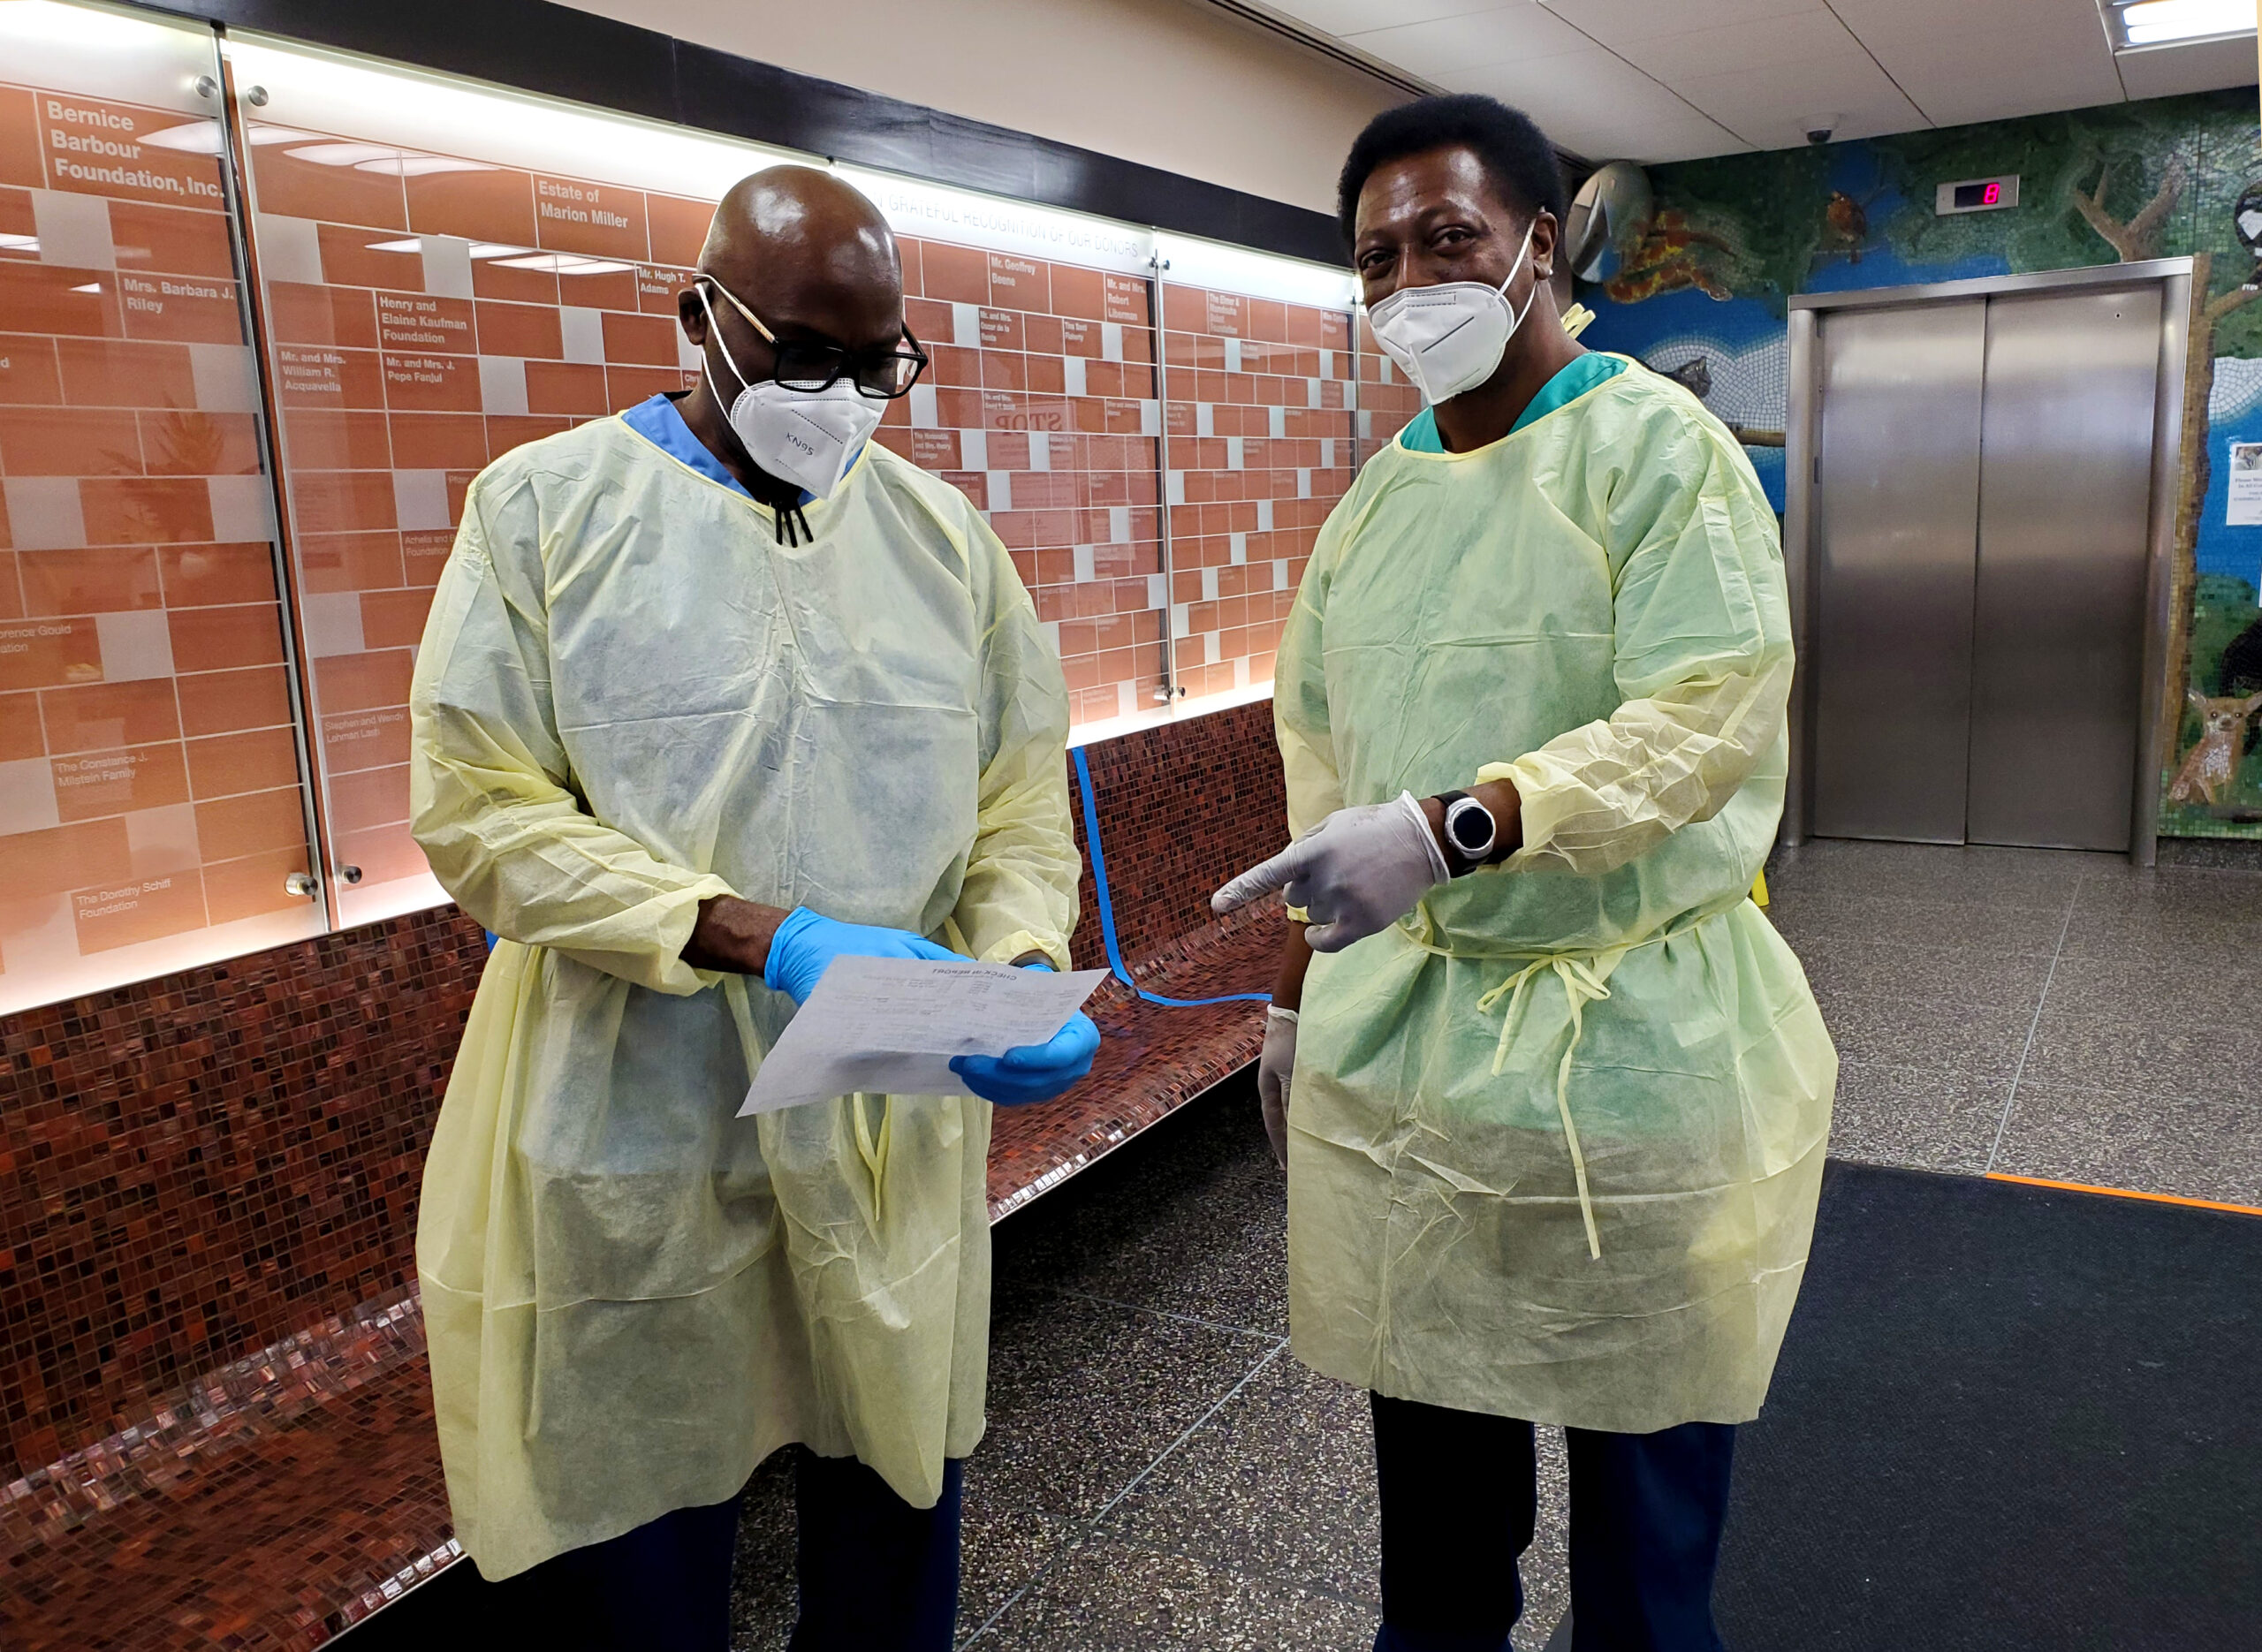 Two masked veterinary professionals stand in the lobby of the Animal Medical Center of New York City